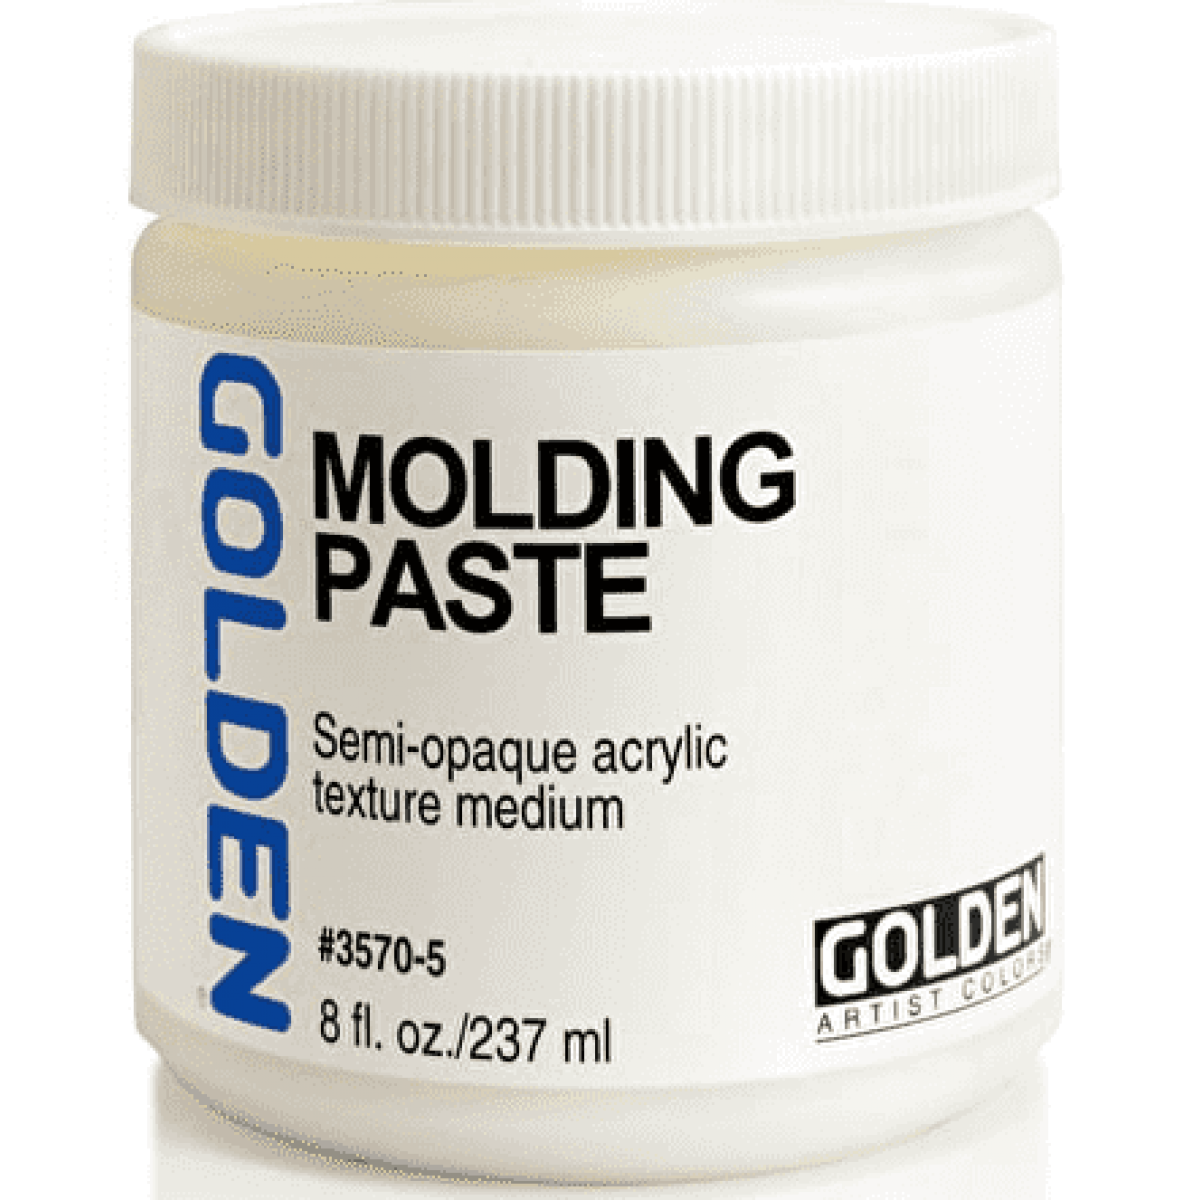 GOLDENMoldingPaste237ml-02